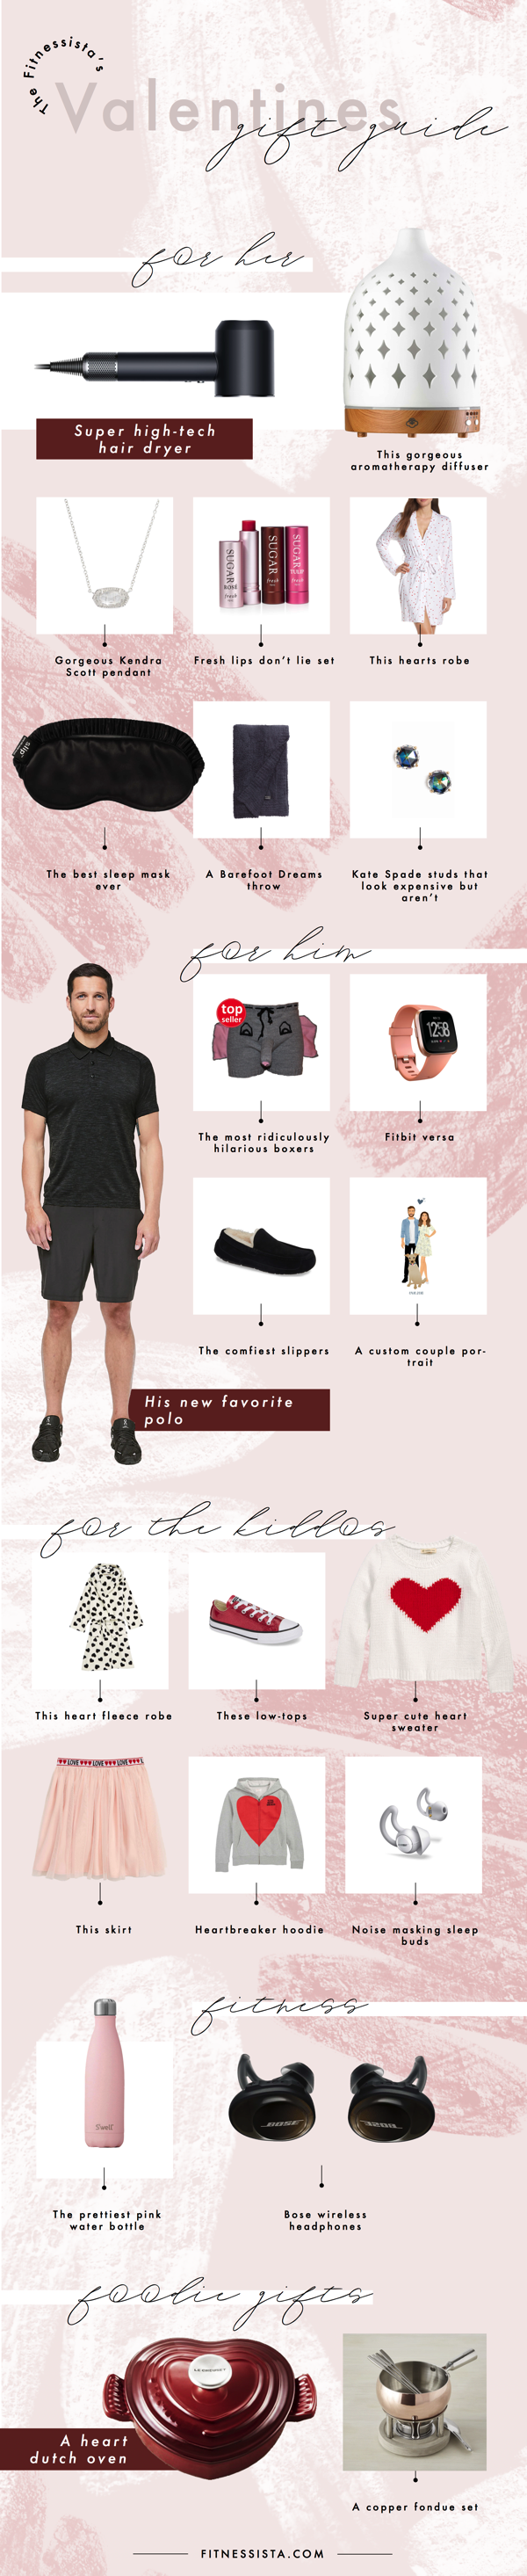 Fitnessista s Valentine Gift Guide 2019